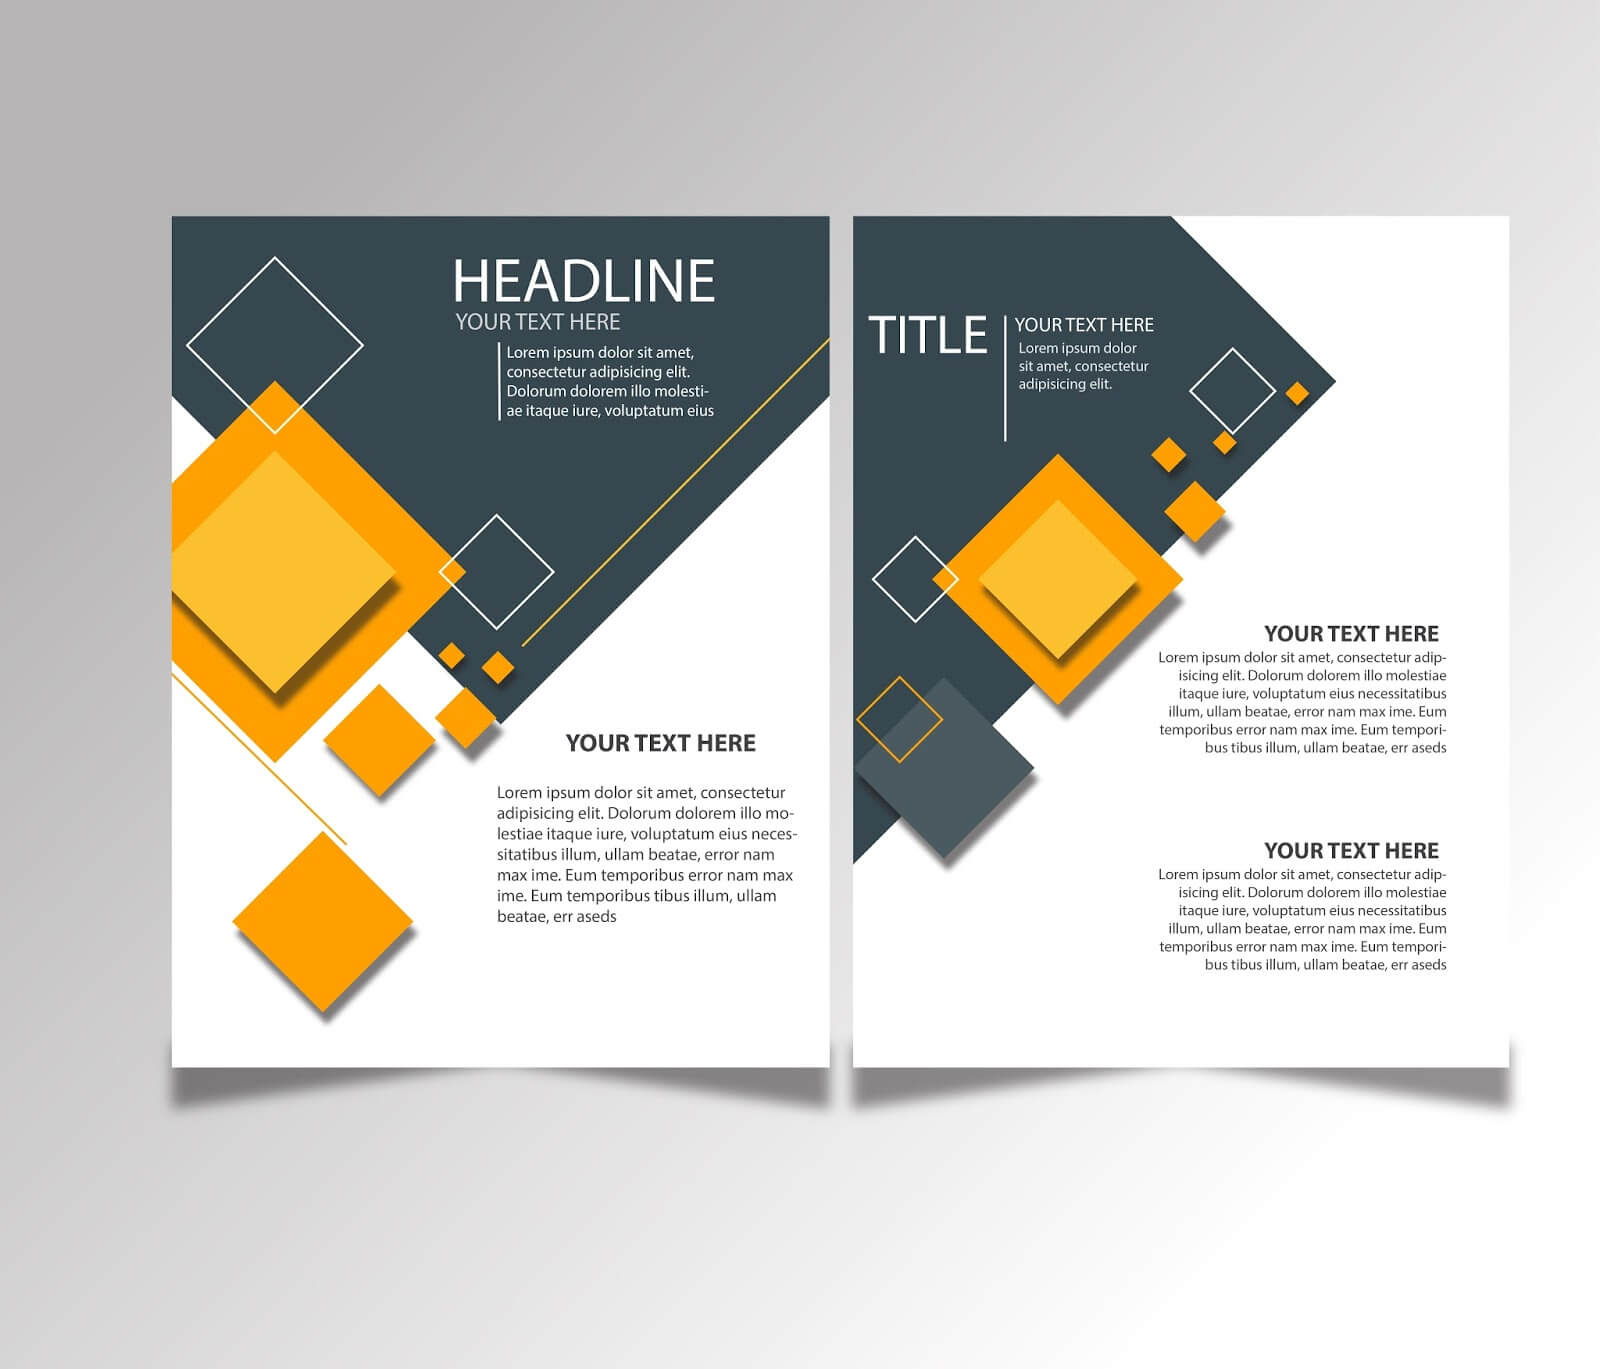 Free Download Brochure Design Templates Ai Files - Ideosprocess Pertaining To Creative Brochure Templates Free Download